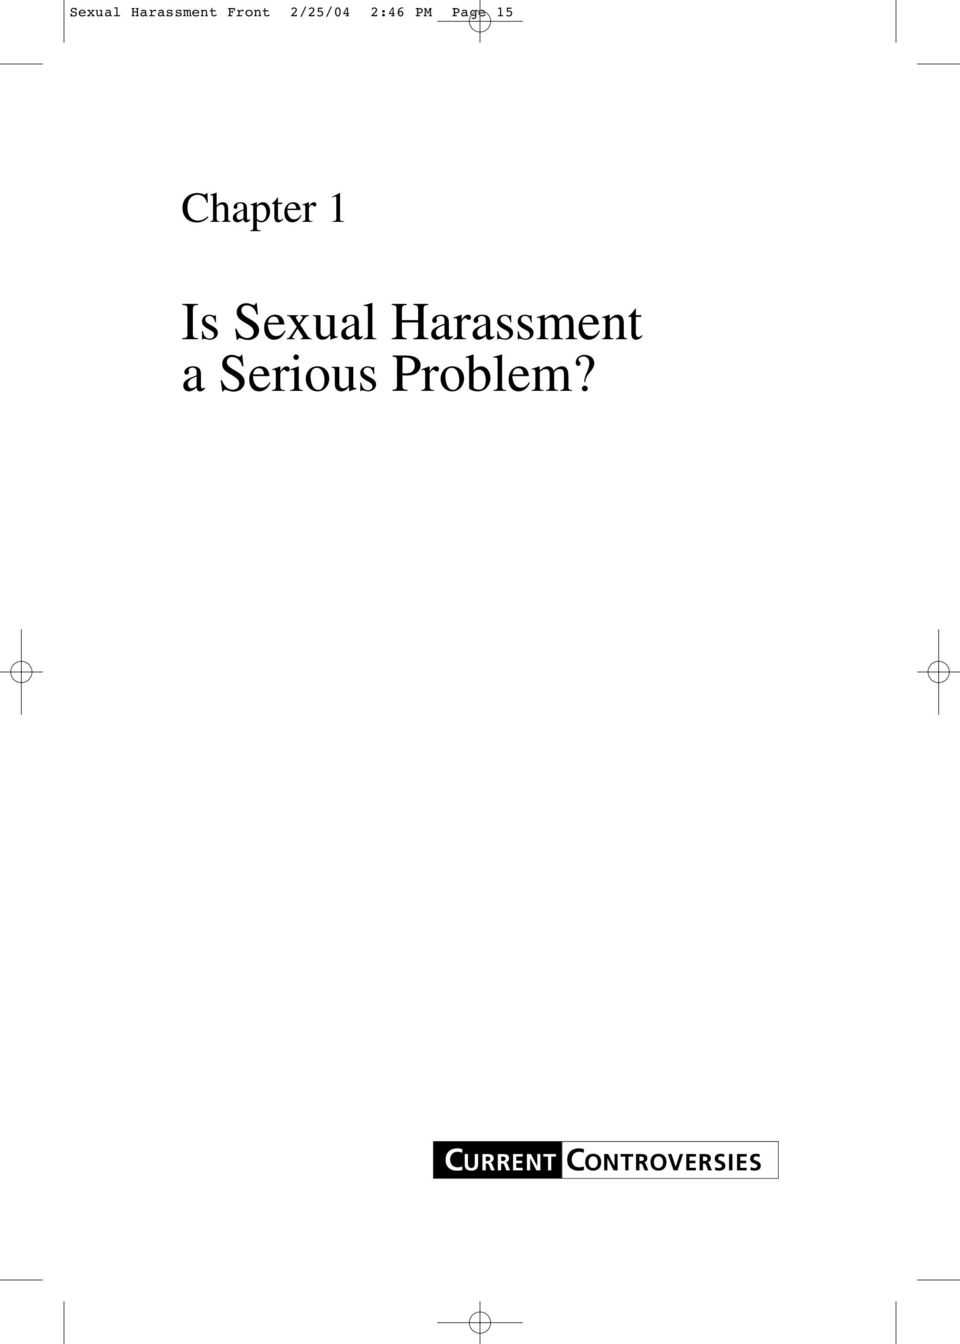 Chapter 1 Is Sexual